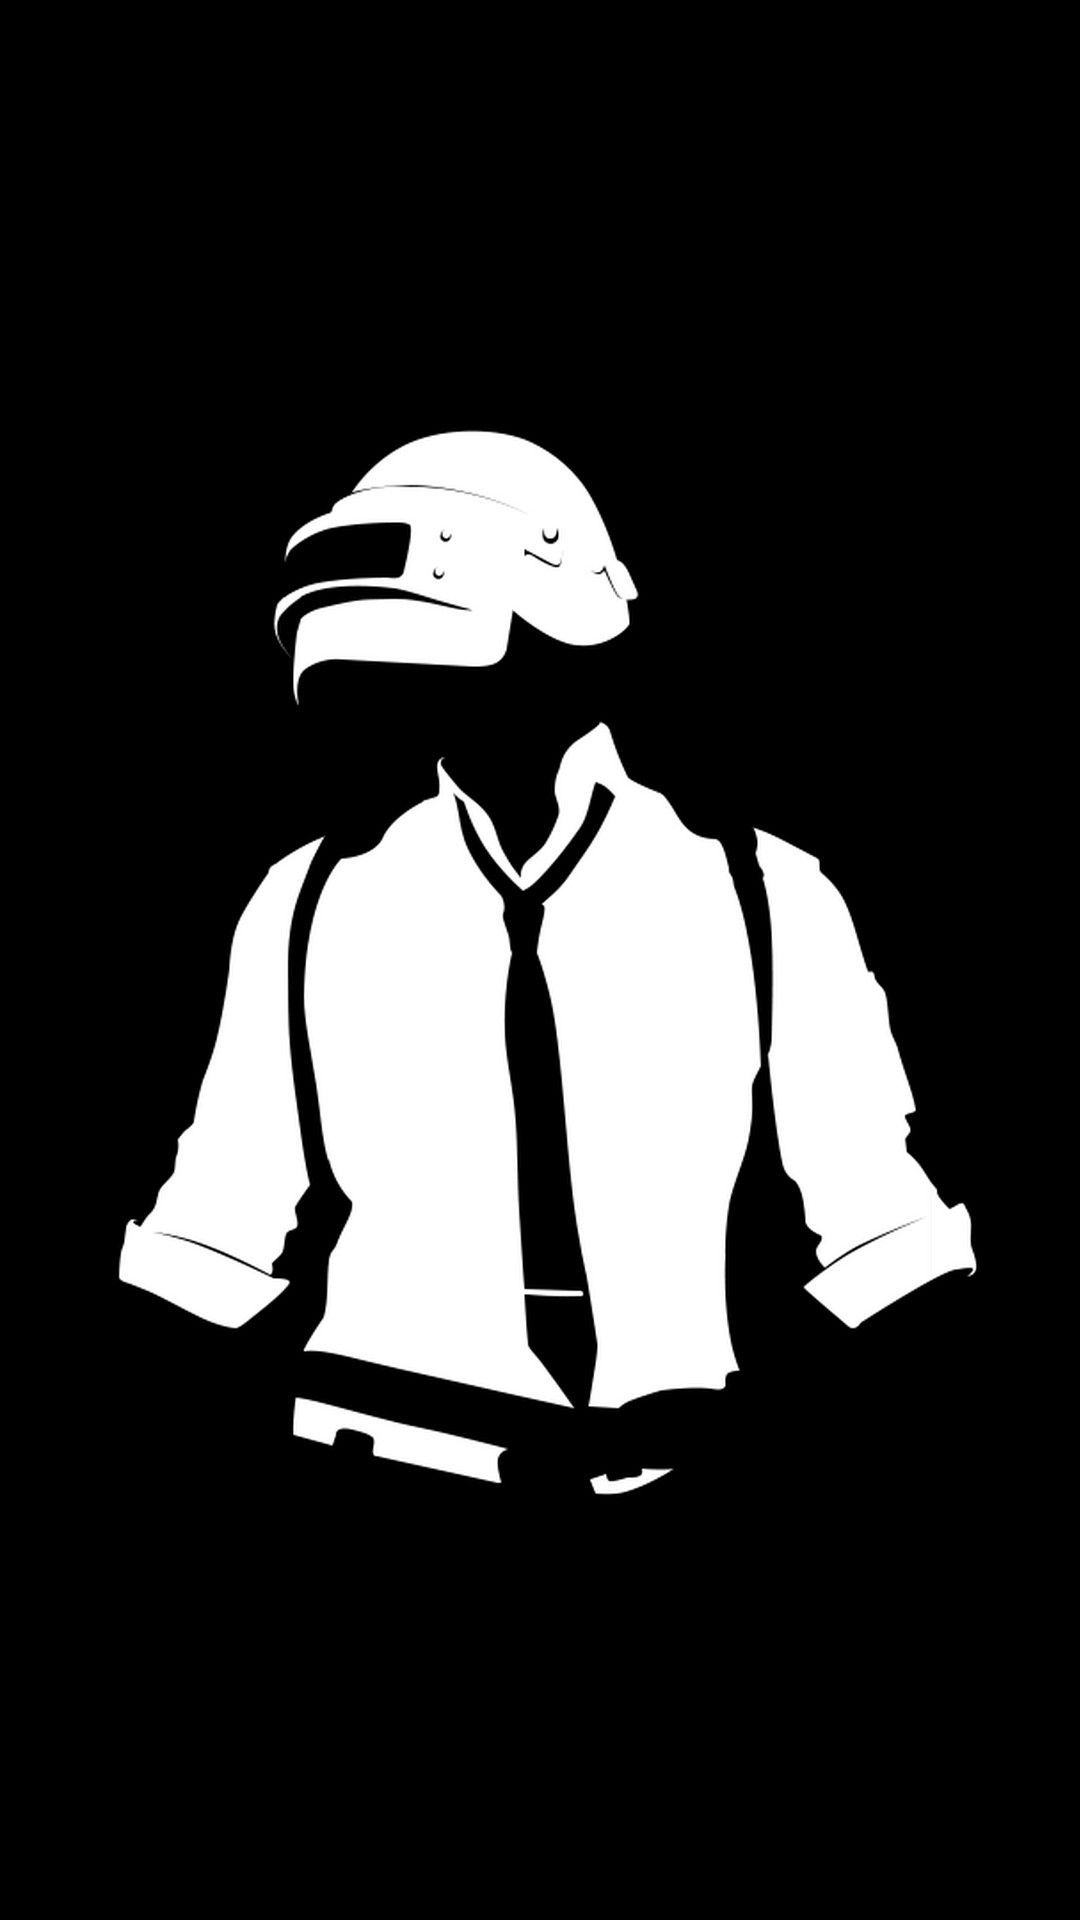 1080x1920 PUBG Xbox One Update Wallpaper For iPhone | iPhoneWallpapers ...